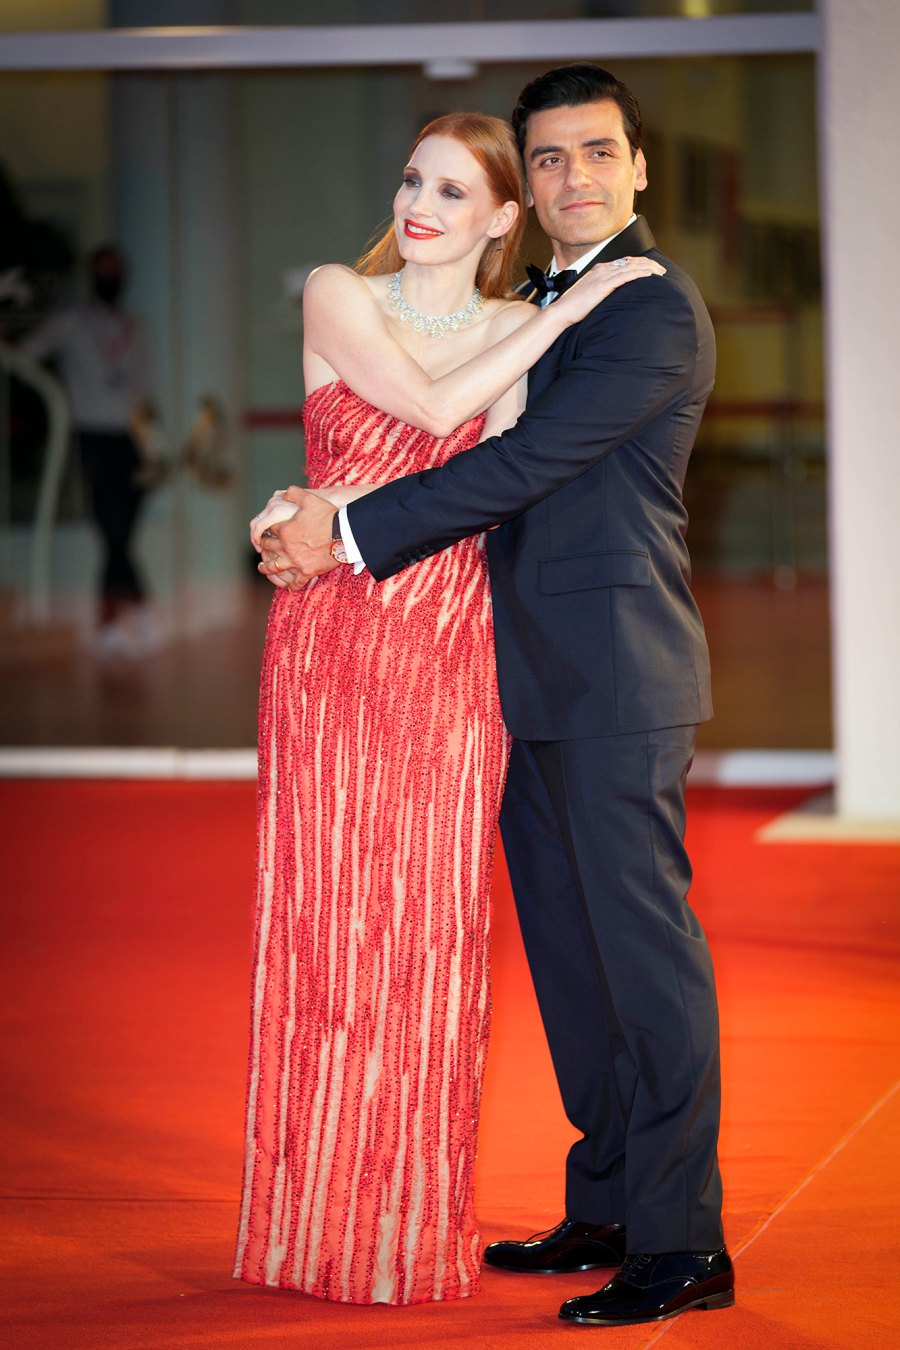 Jessica Chastain and Oscar Isaac at the Scenes from a Marriage premiere